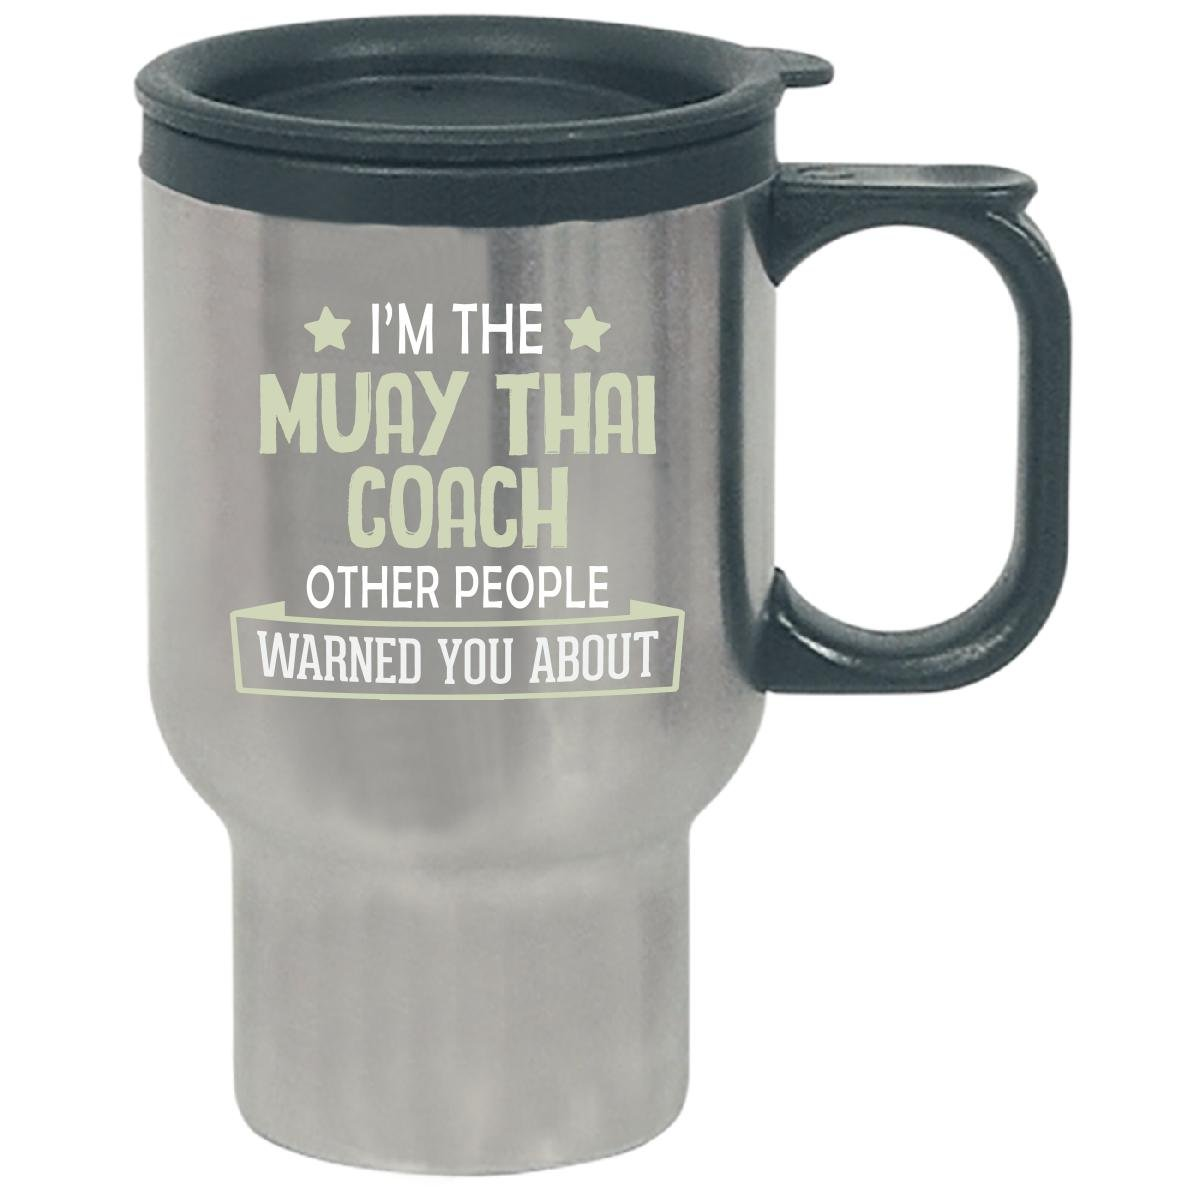 I'm The Muay Thai Coach Others Warned You About - Travel Mug